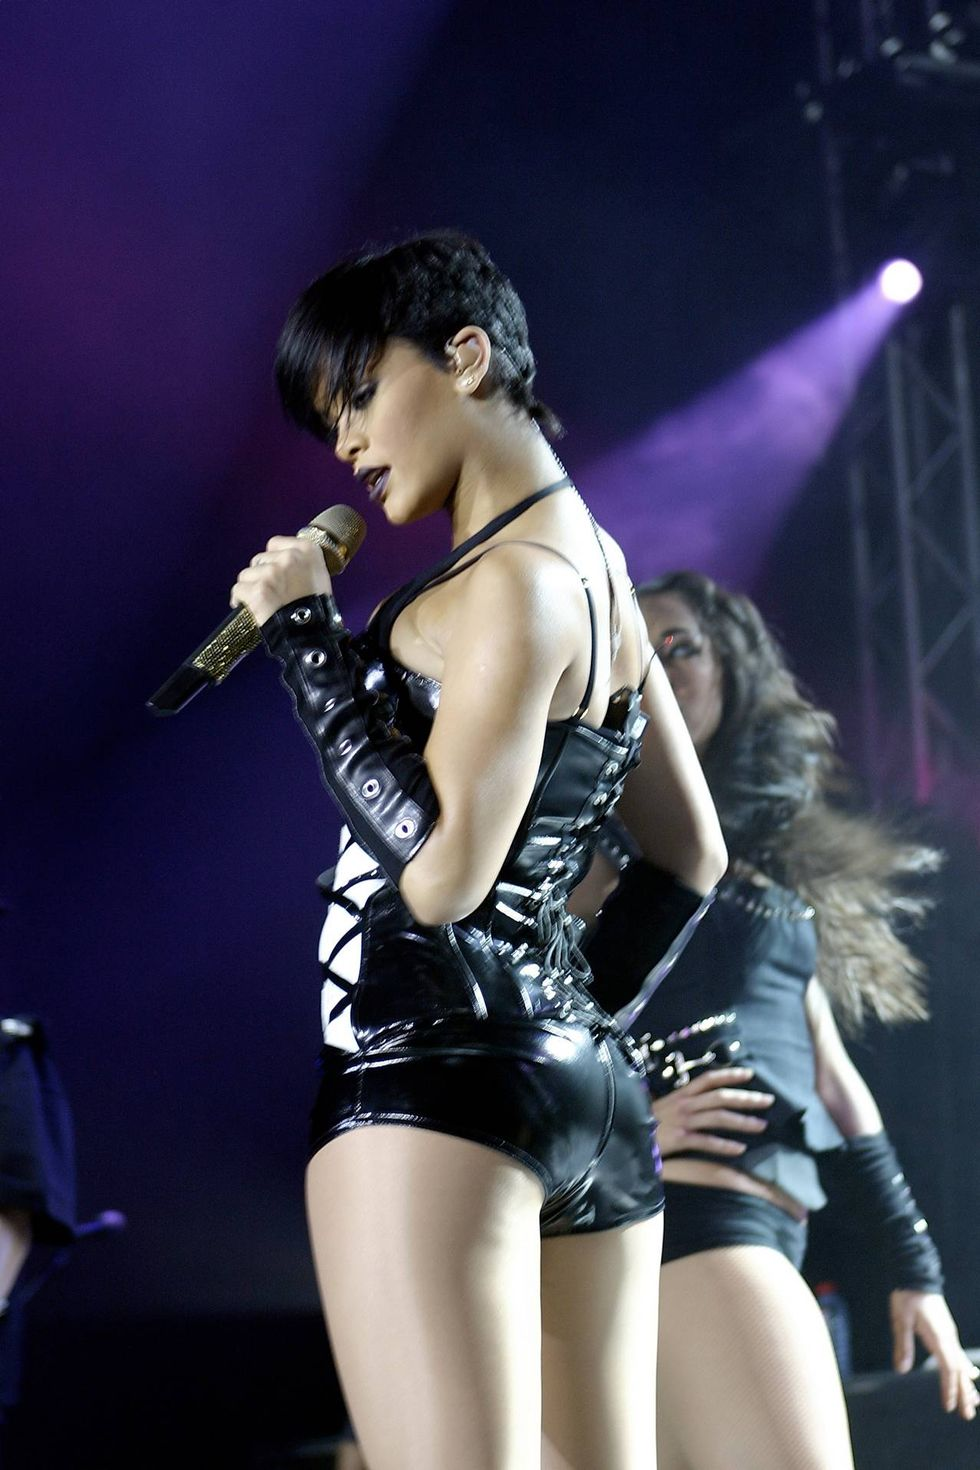 rihanna-performs-at-concert-in-moscow-01